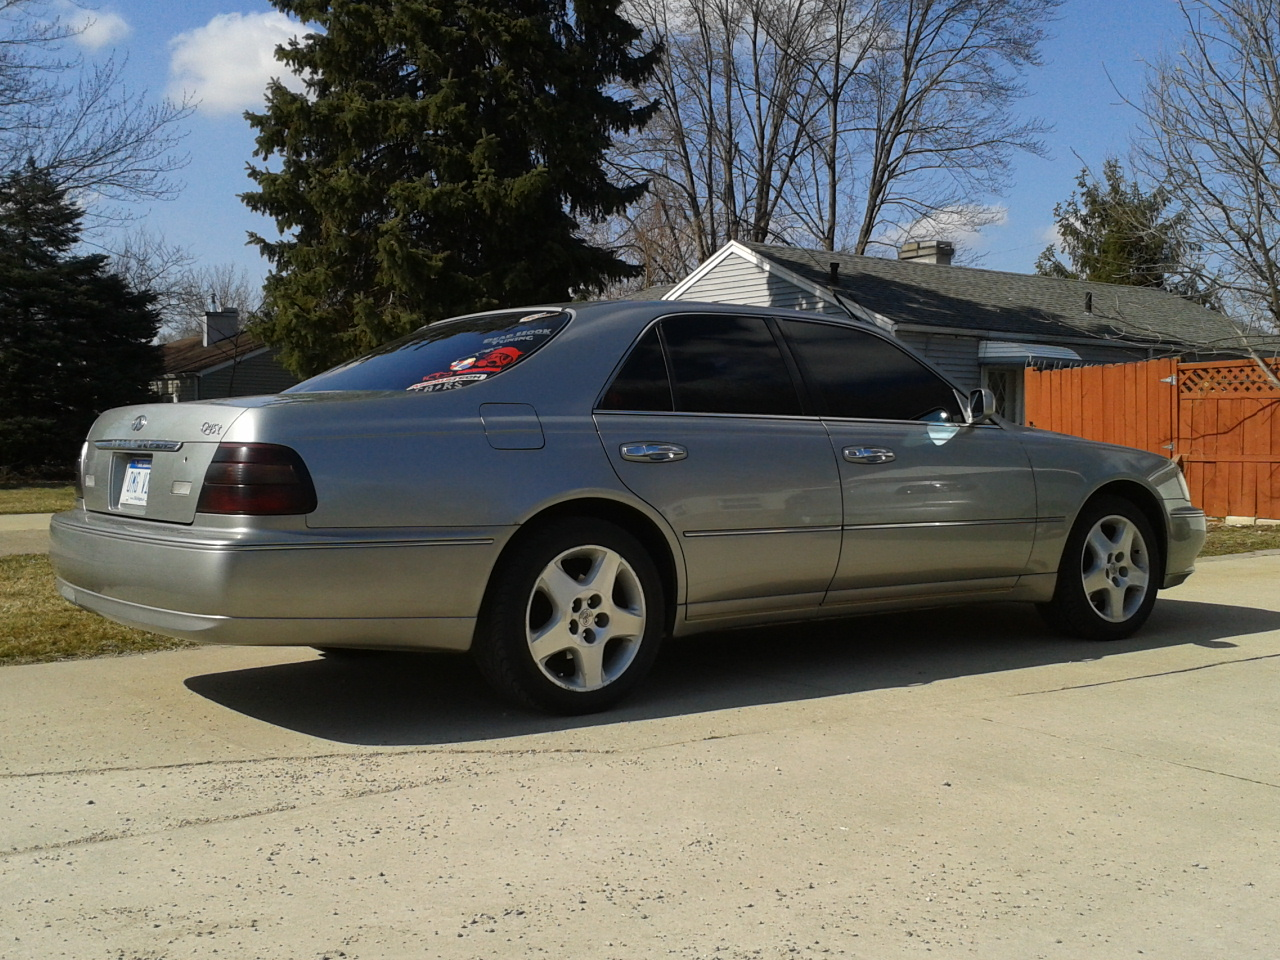 1999 Infiniti Q45 4 Dr Touring Sedan picture